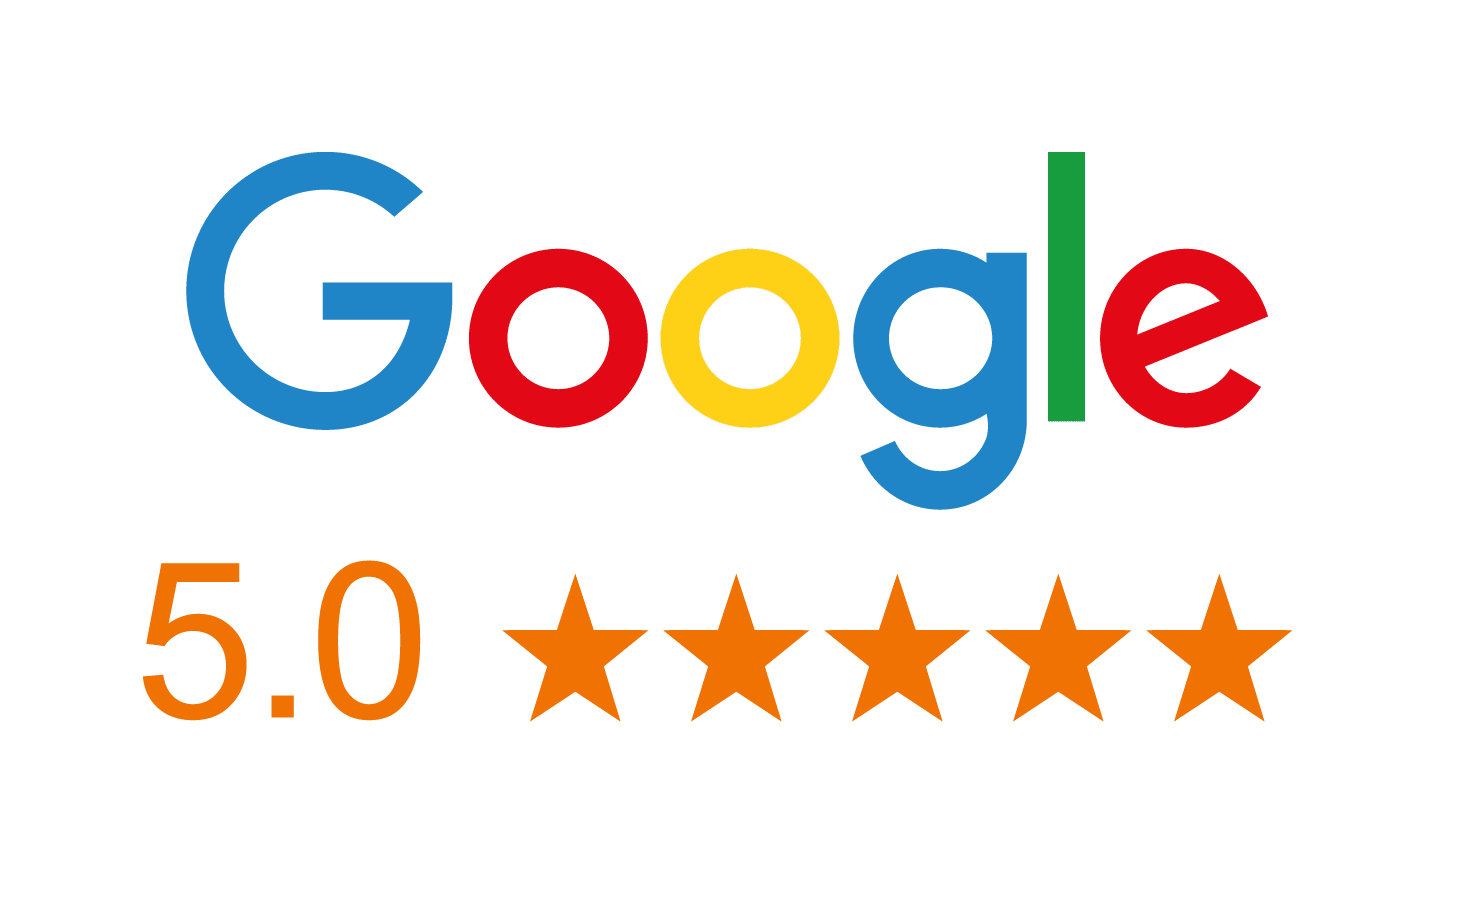 Google-Rating-5-star-1